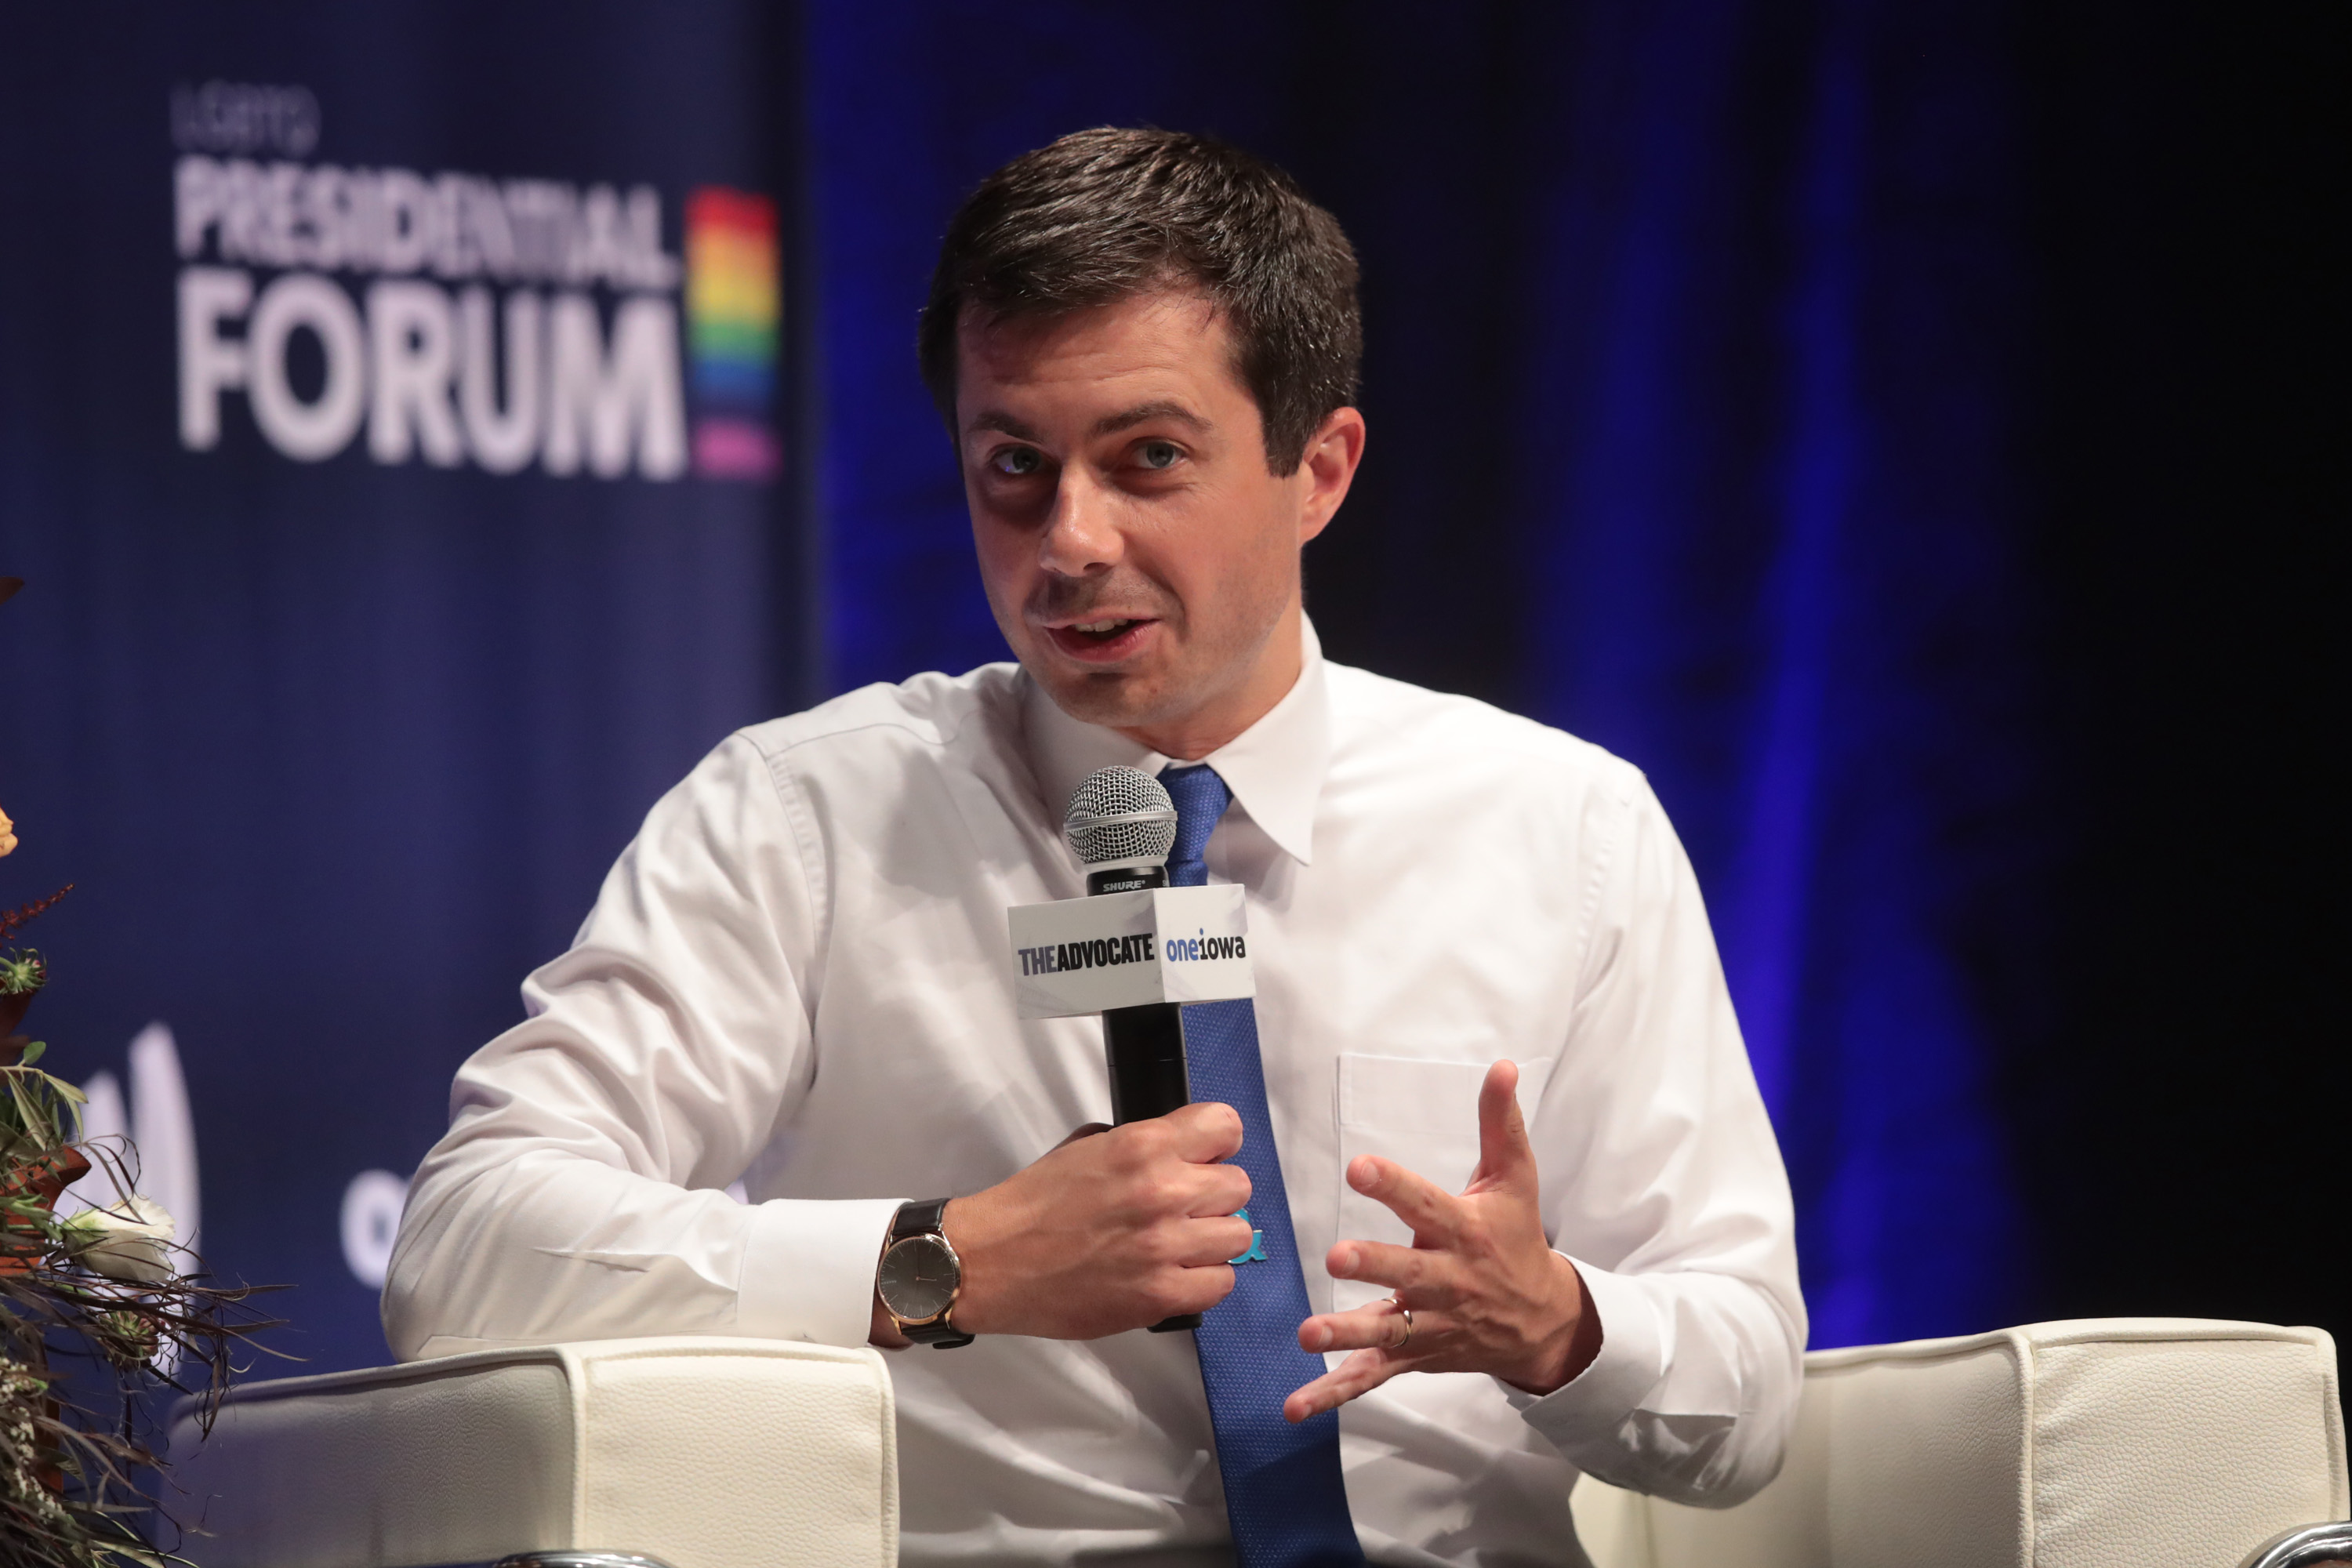 CEDAR RAPIDS, IOWA - SEPTEMBER 20: Democratic presidential candidate and South Bend, Indiana mayor Pete Buttigieg speaks at an LGBTQ presidential forum at Coe College's Sinclair Auditorium on September 20, 2019 in Cedar Rapids, Iowa. The event is the first public event of the 2020 election cycle to focus entirely on LGBTQ issues. (Photo by Scott Olson/Getty Images) (Photo by Scott Olson/Getty Images)